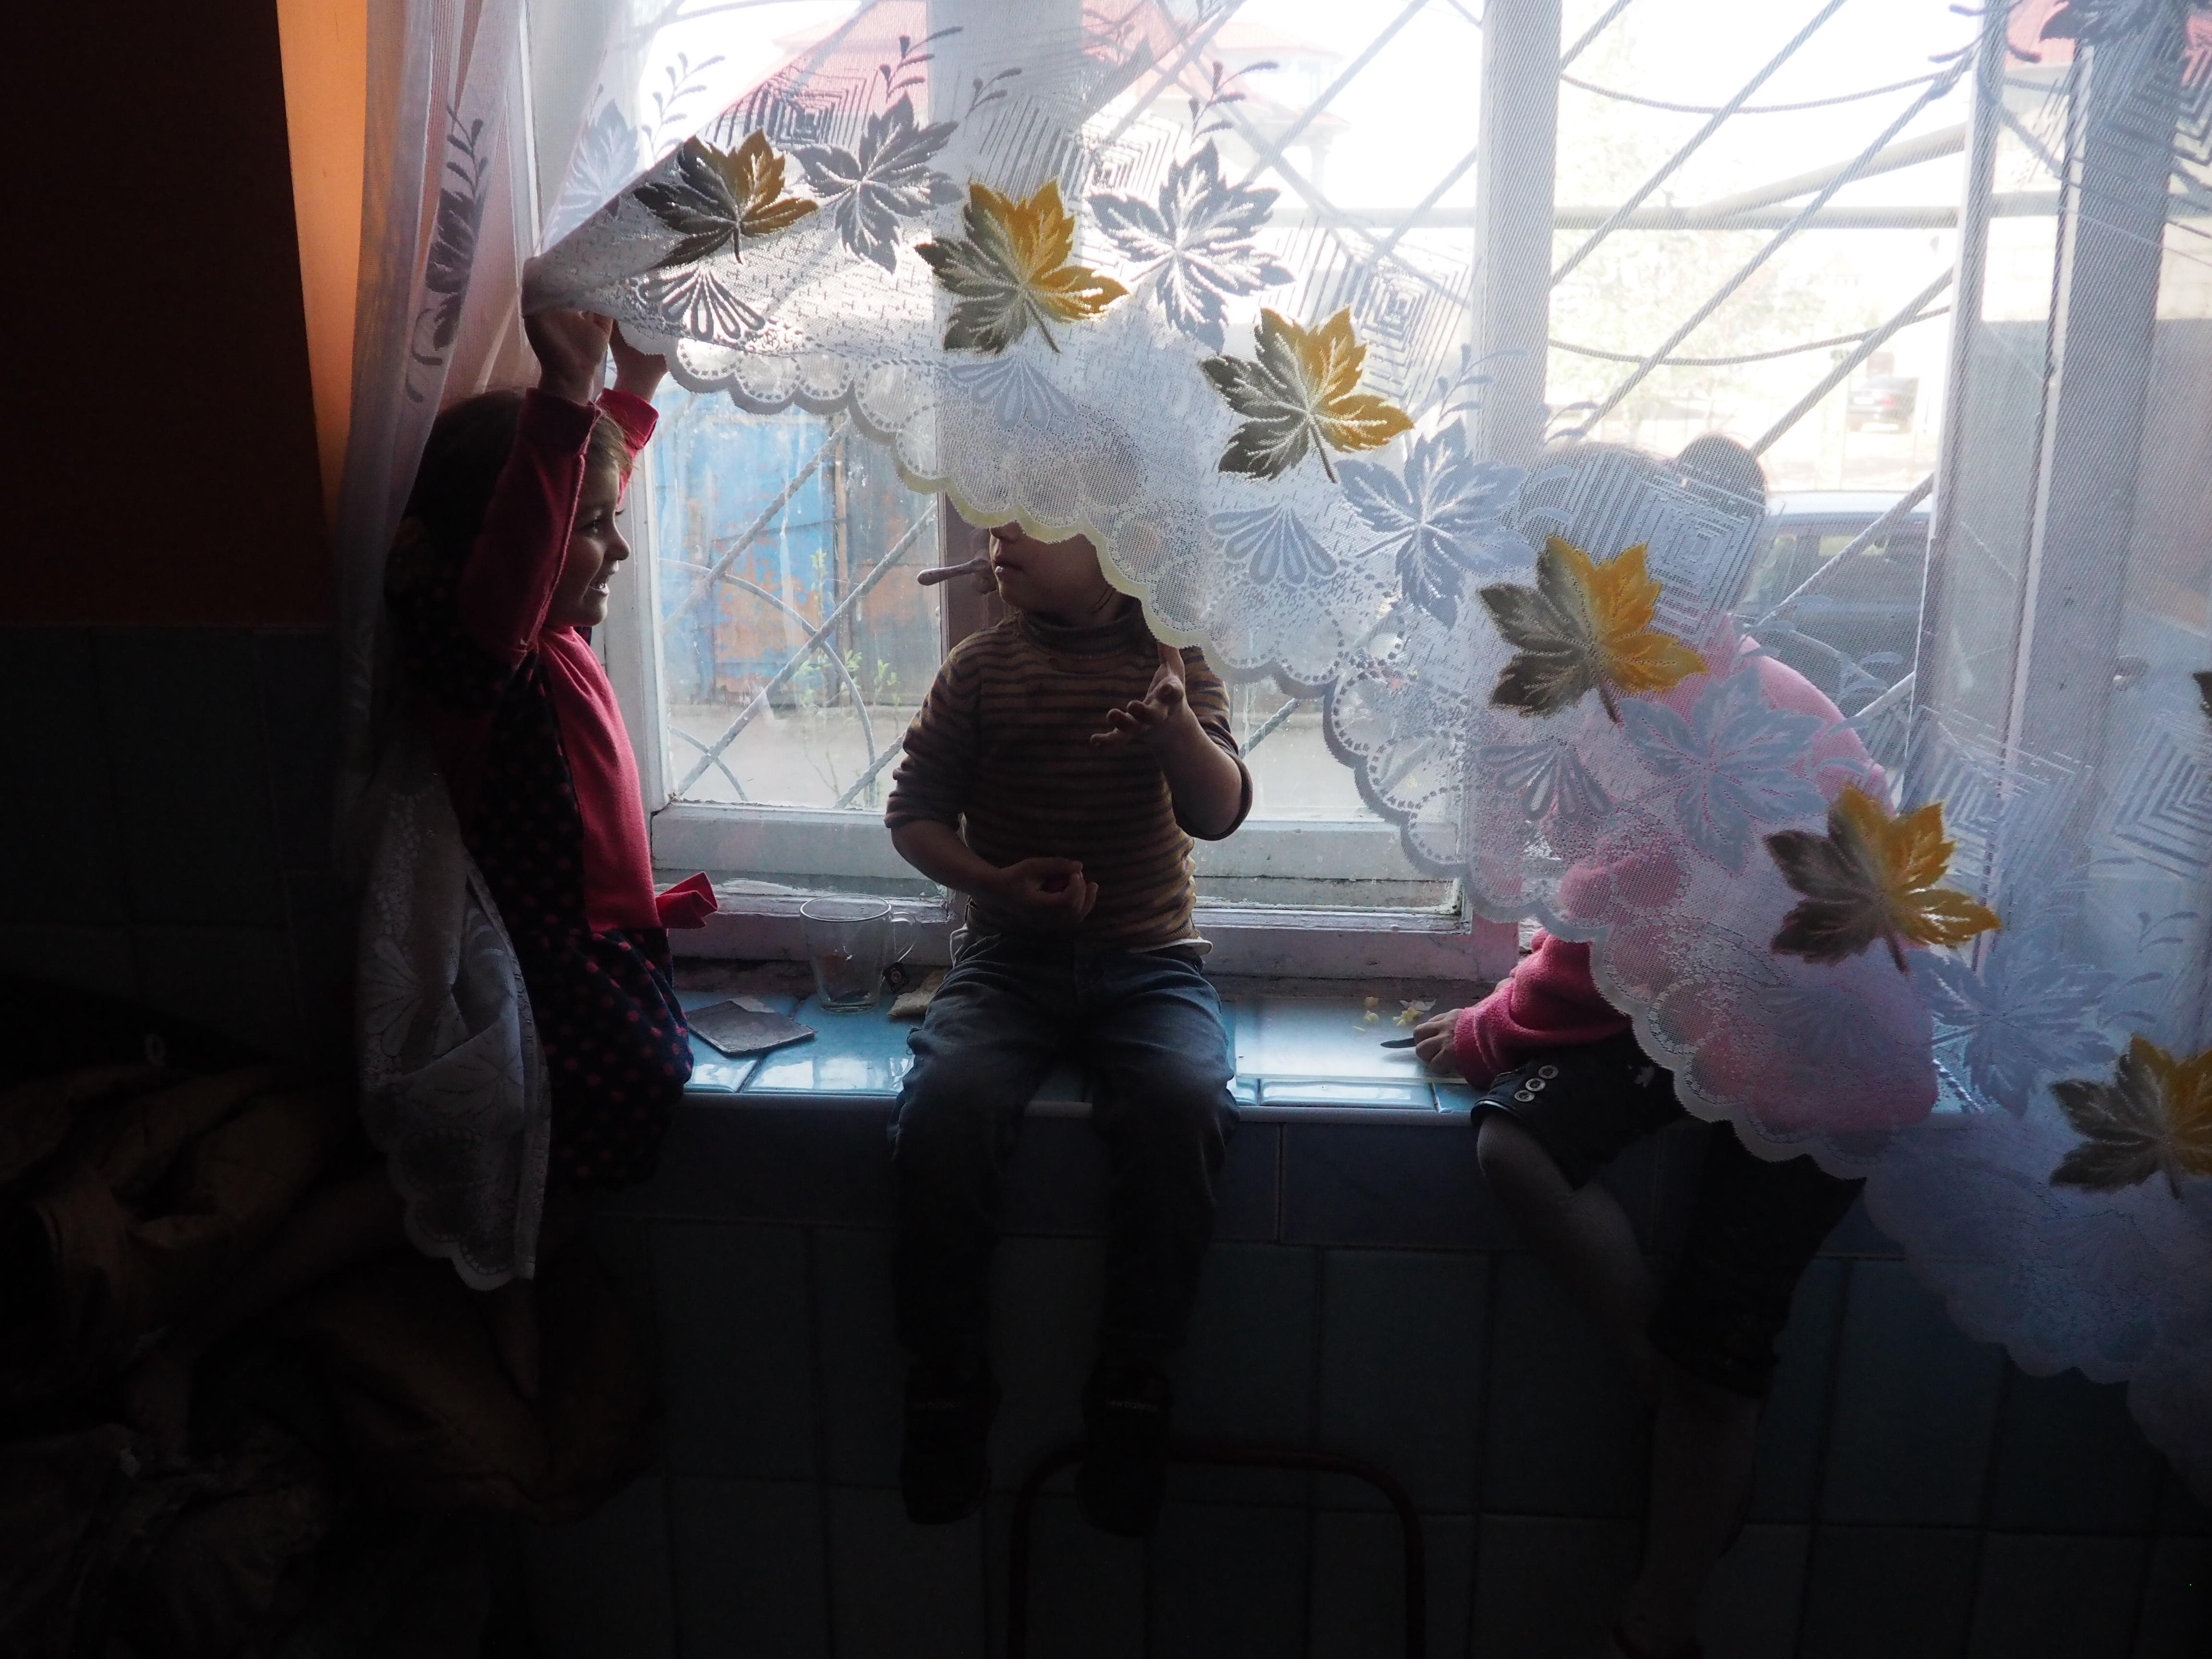 Three people look out a window with a flowered lace curtain.